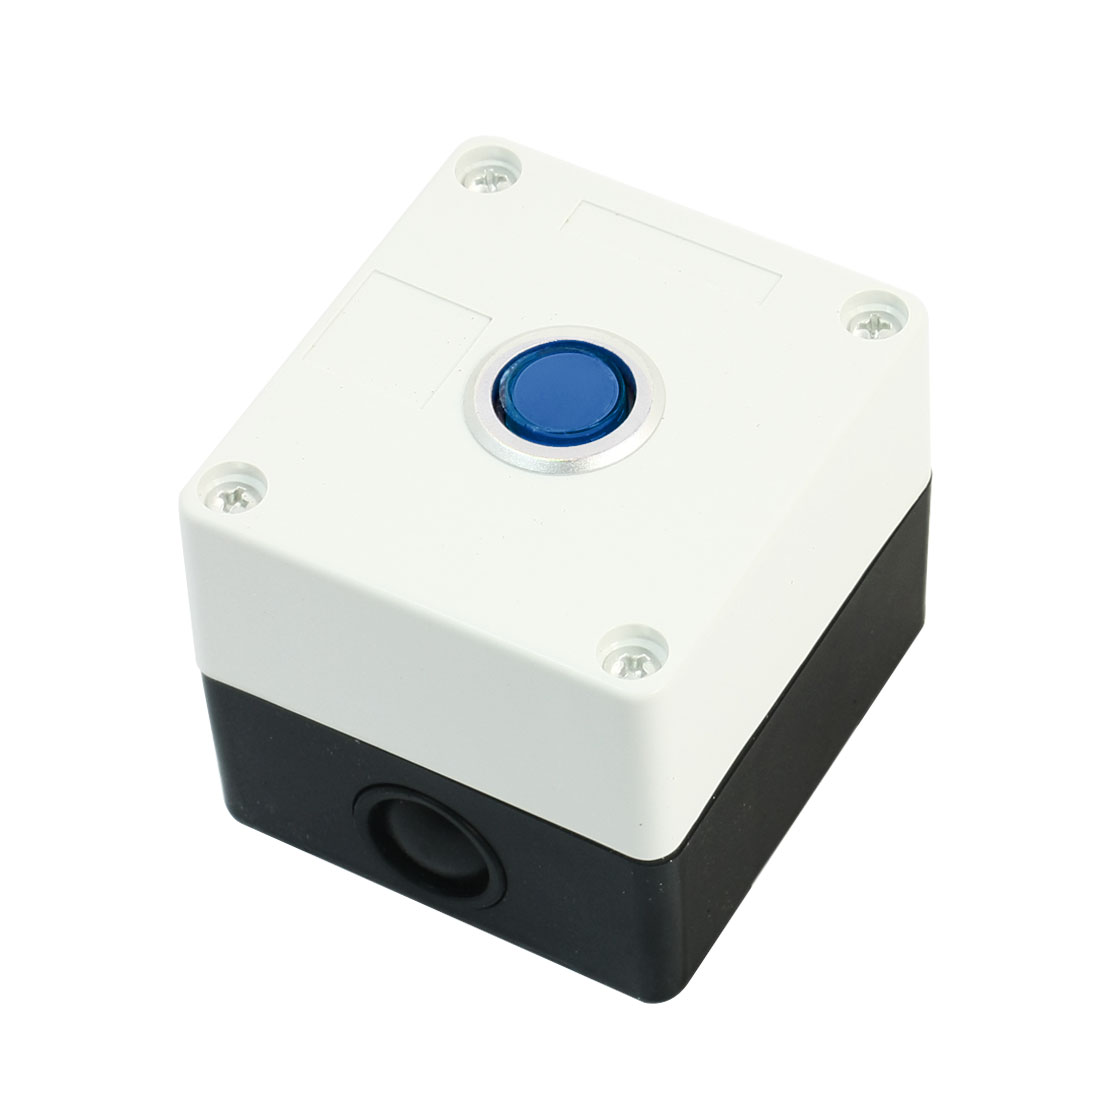 AC 220V Blue Light SPDT 1 NO 1 NC 5 Pin Soldering Momentary Type Push Button Control Station Box